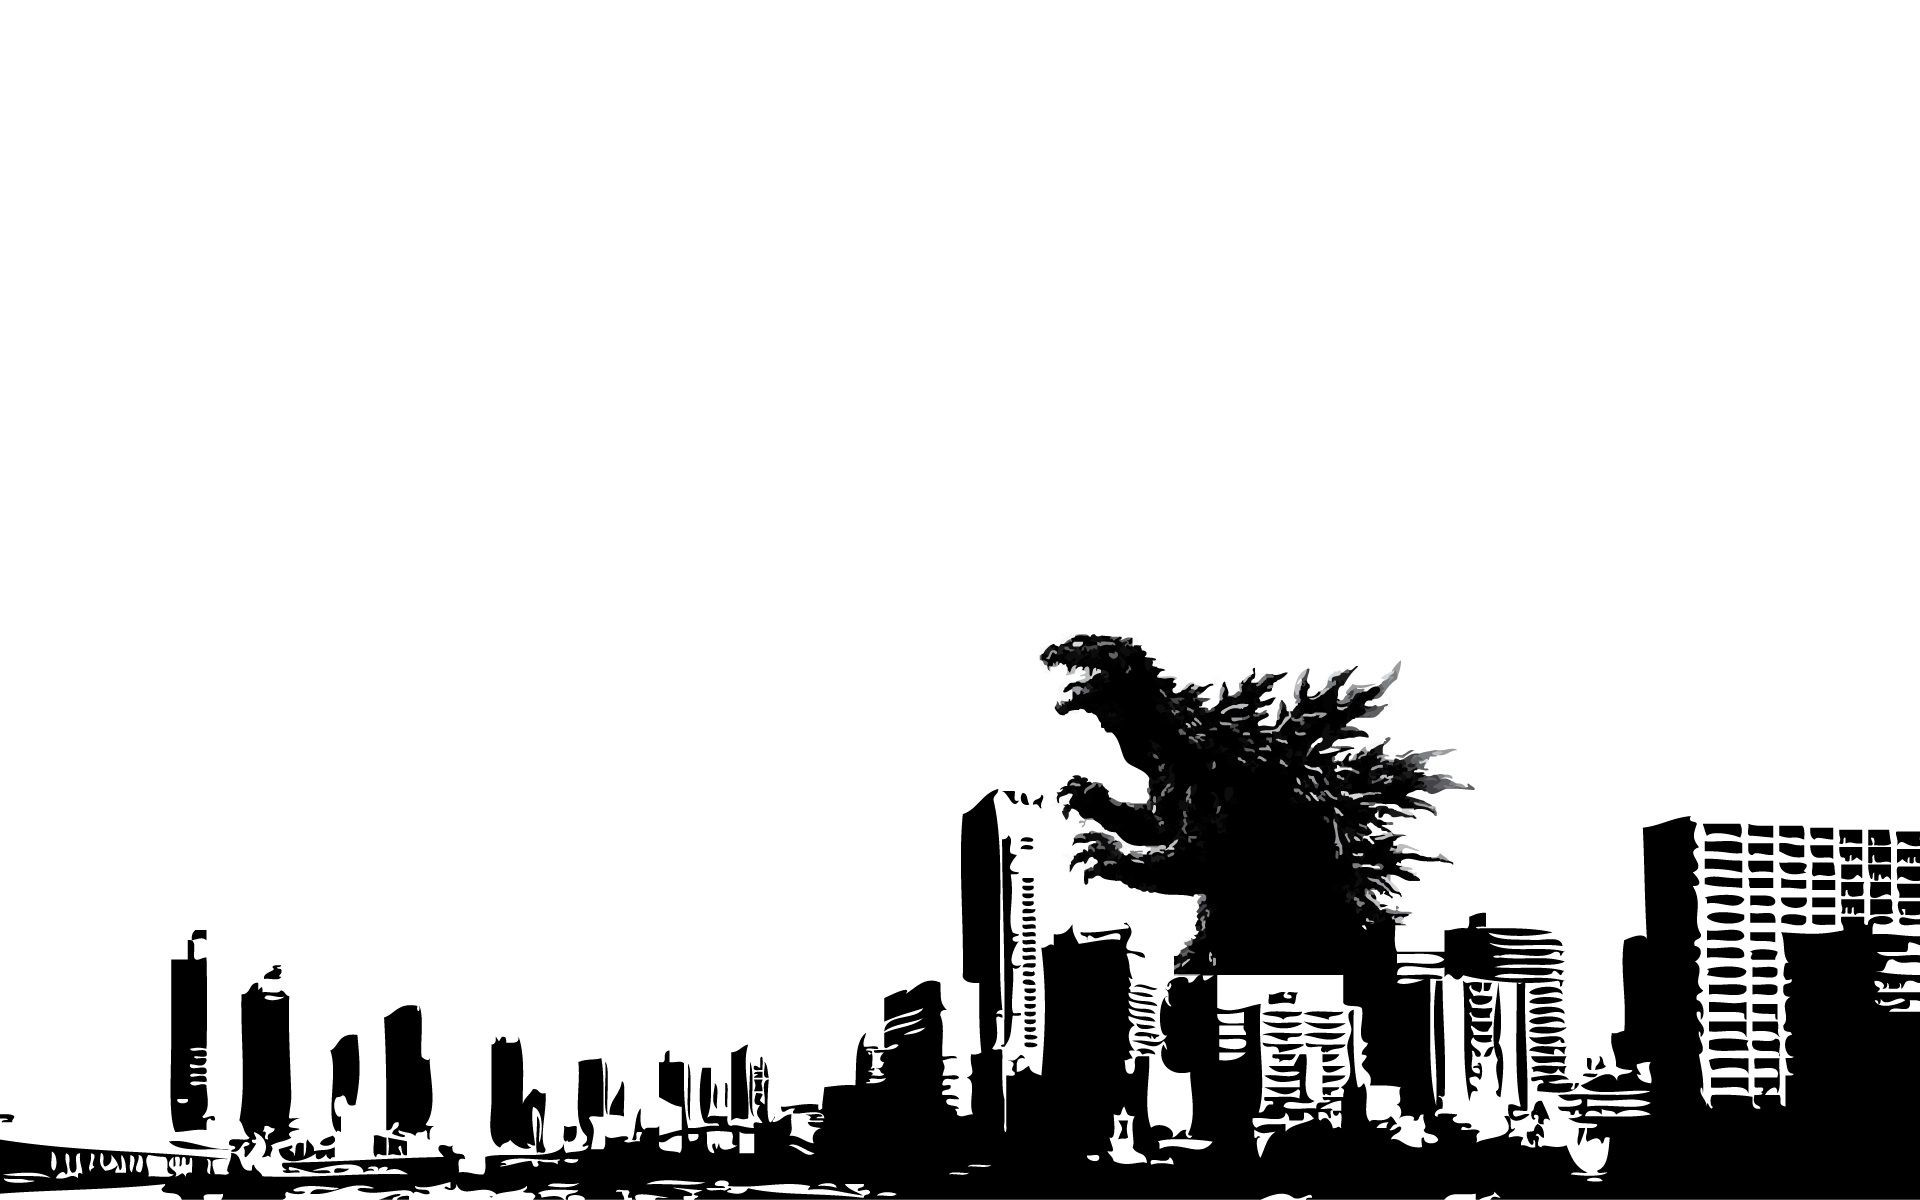 Collection Of Godzilla Wallpapers On HDWallpapers